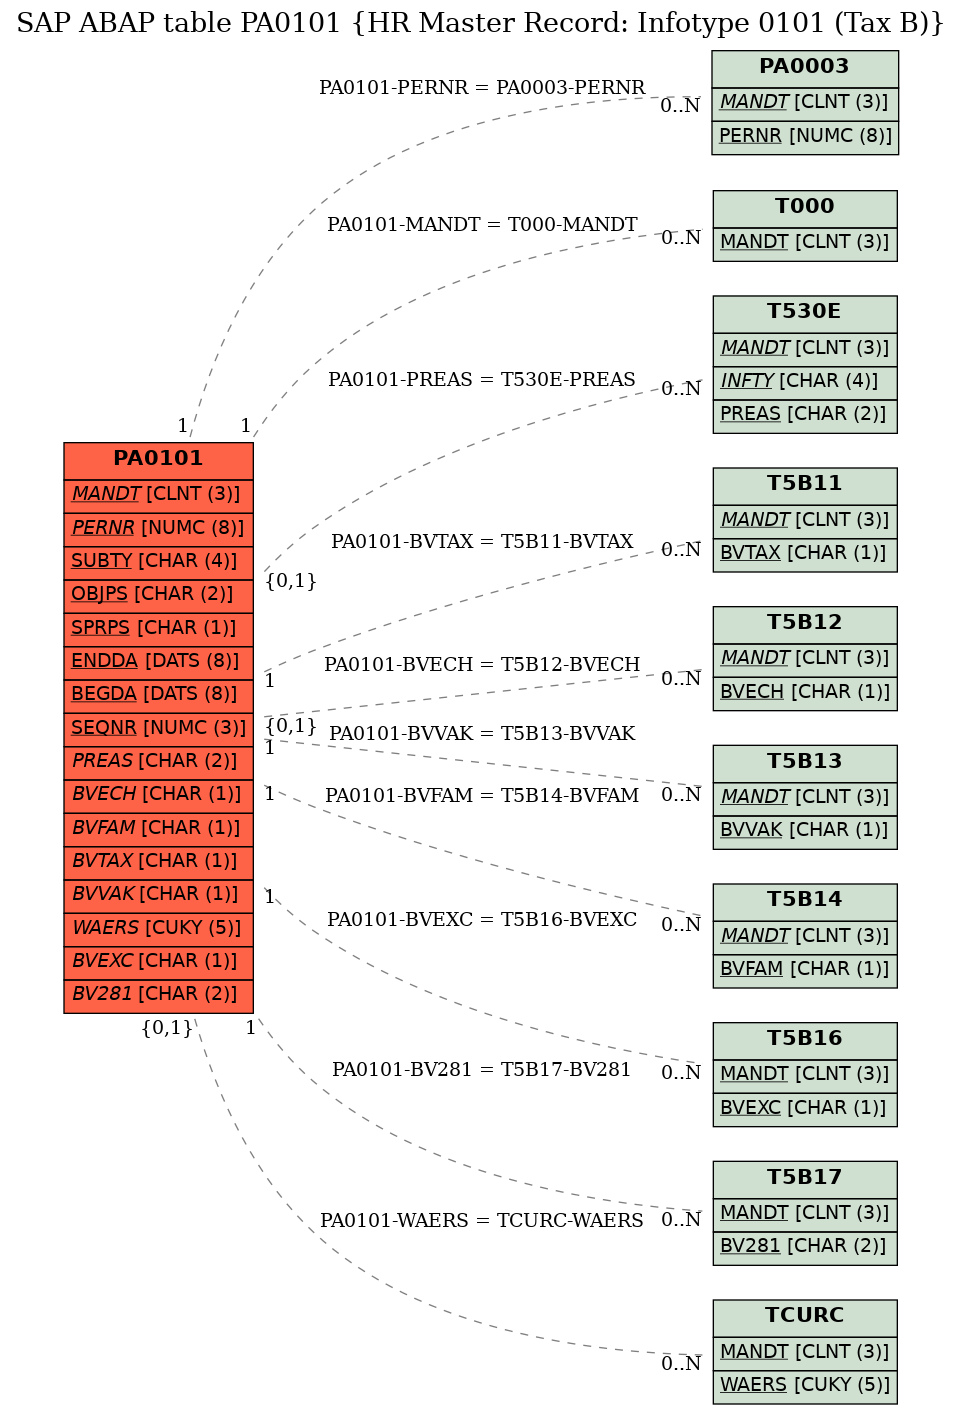 E-R Diagram for table PA0101 (HR Master Record: Infotype 0101 (Tax B))